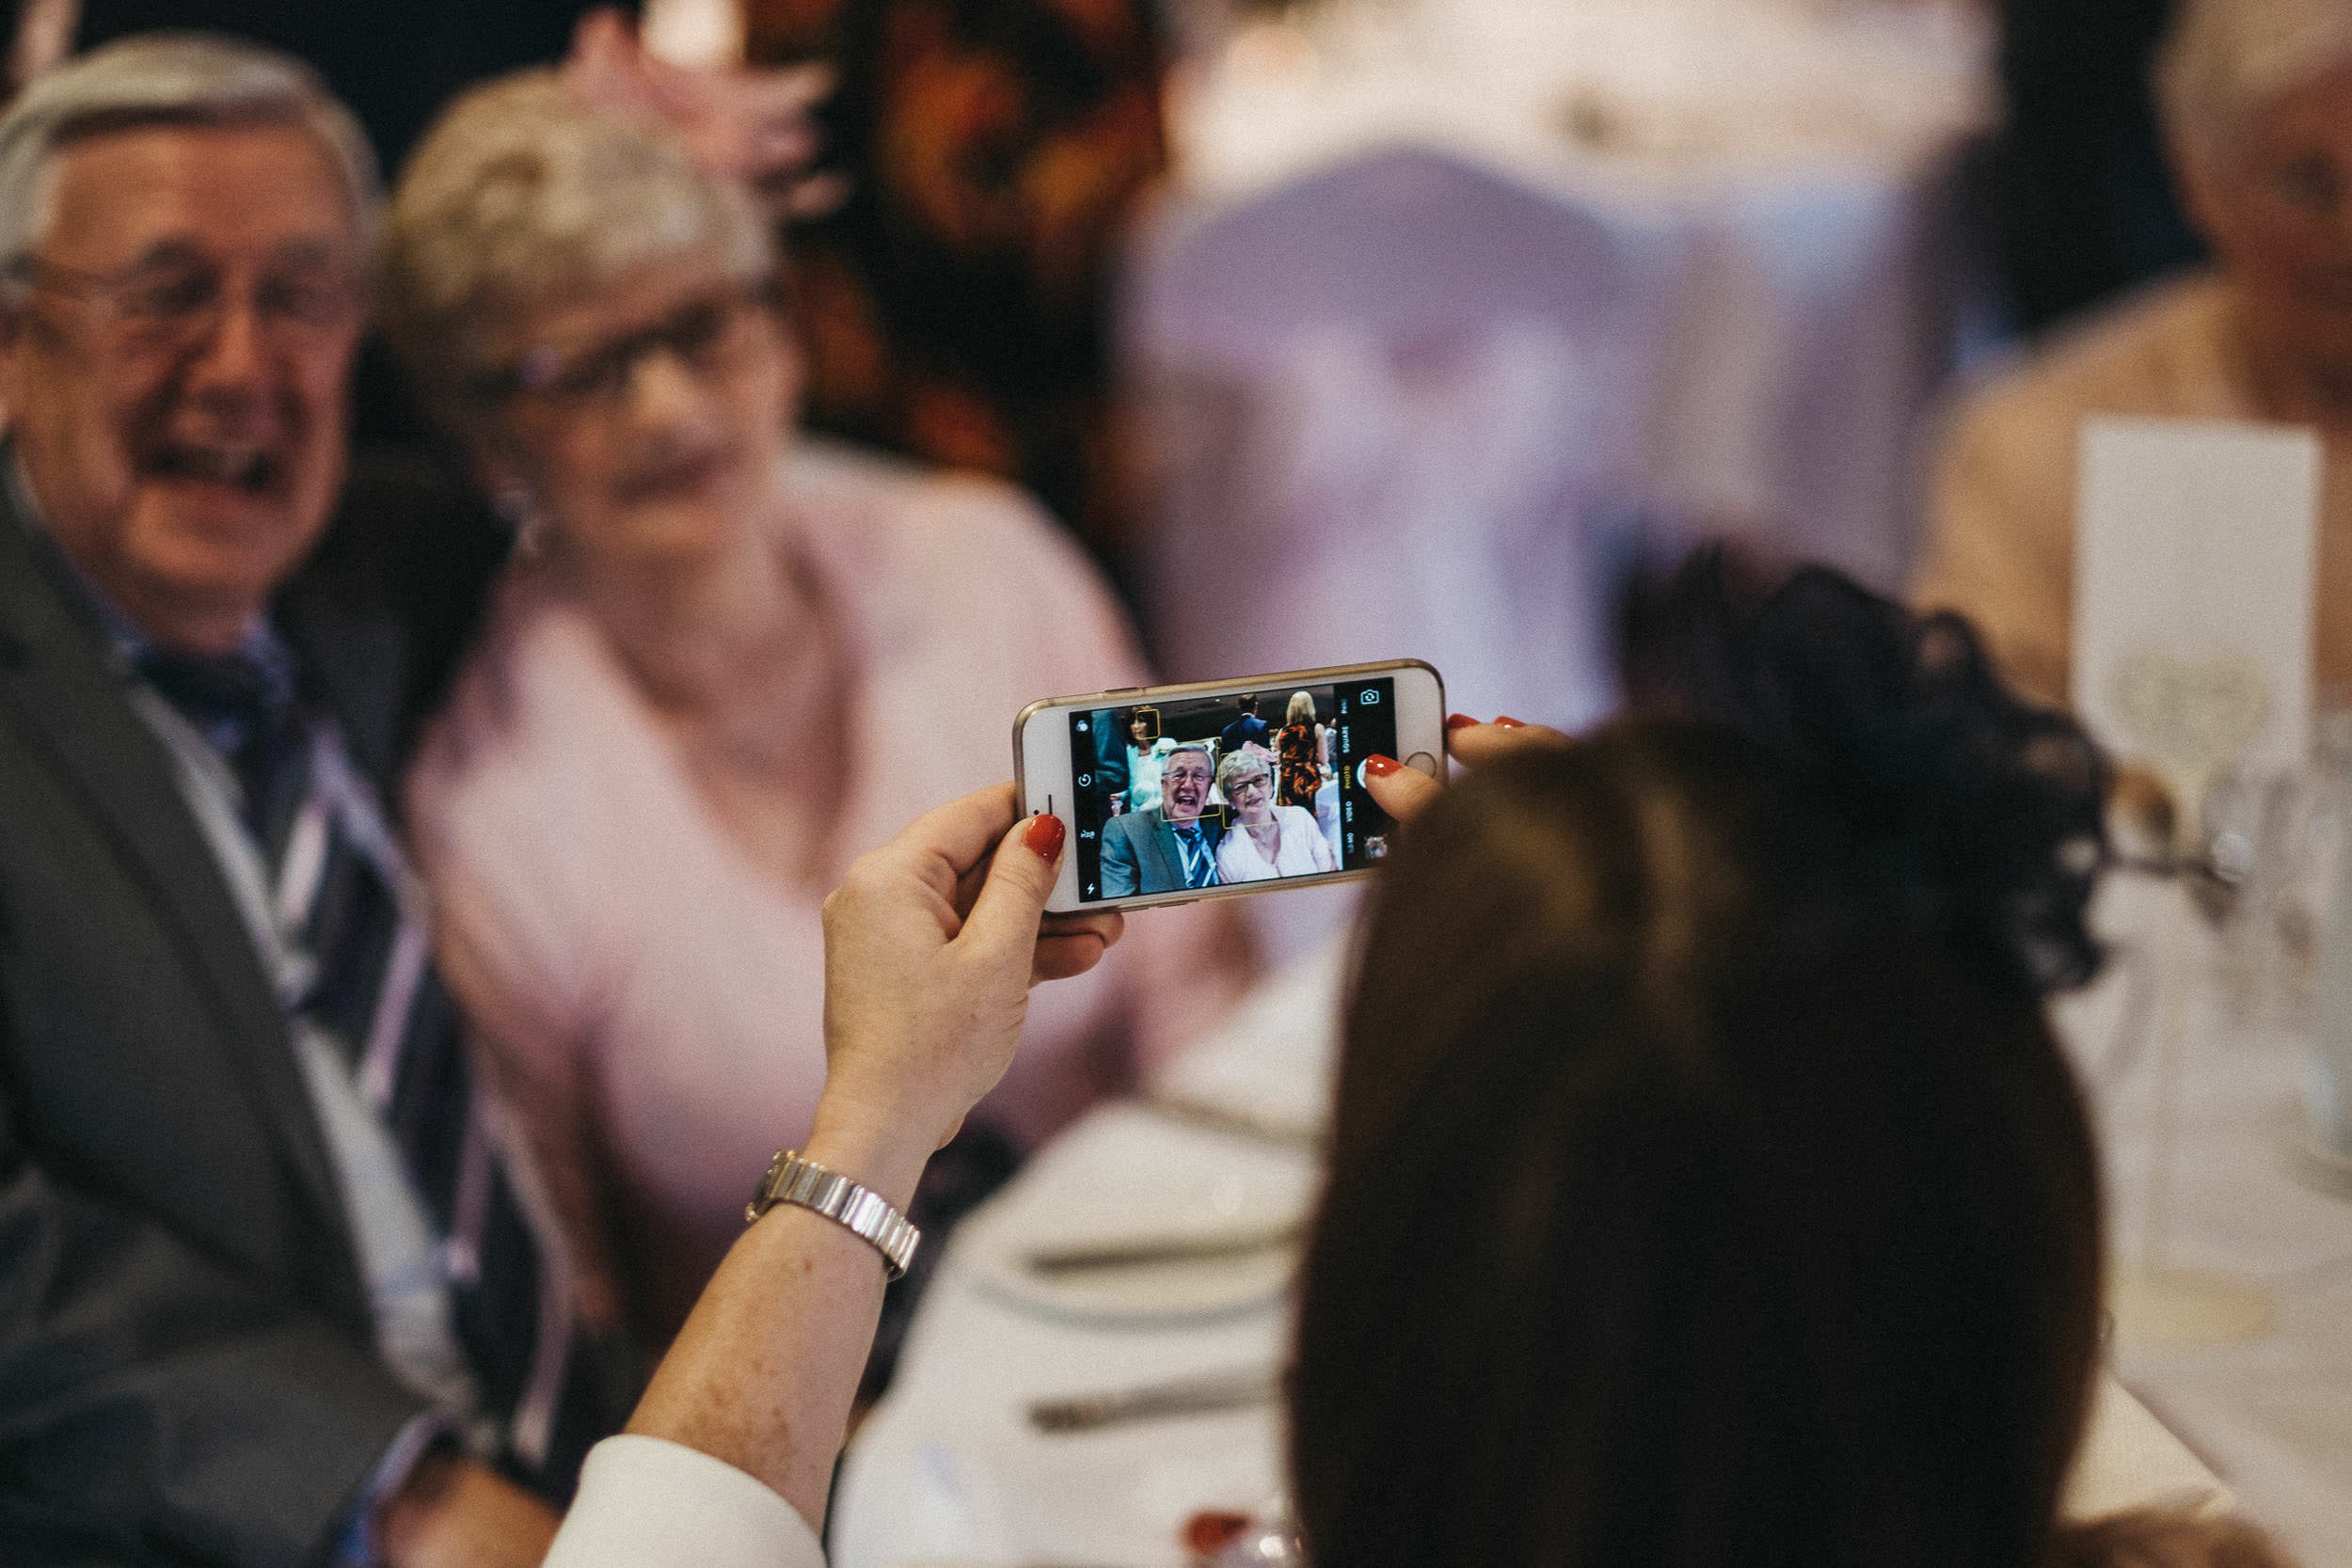 Photo of the back of phone taking a photo os wedding guests